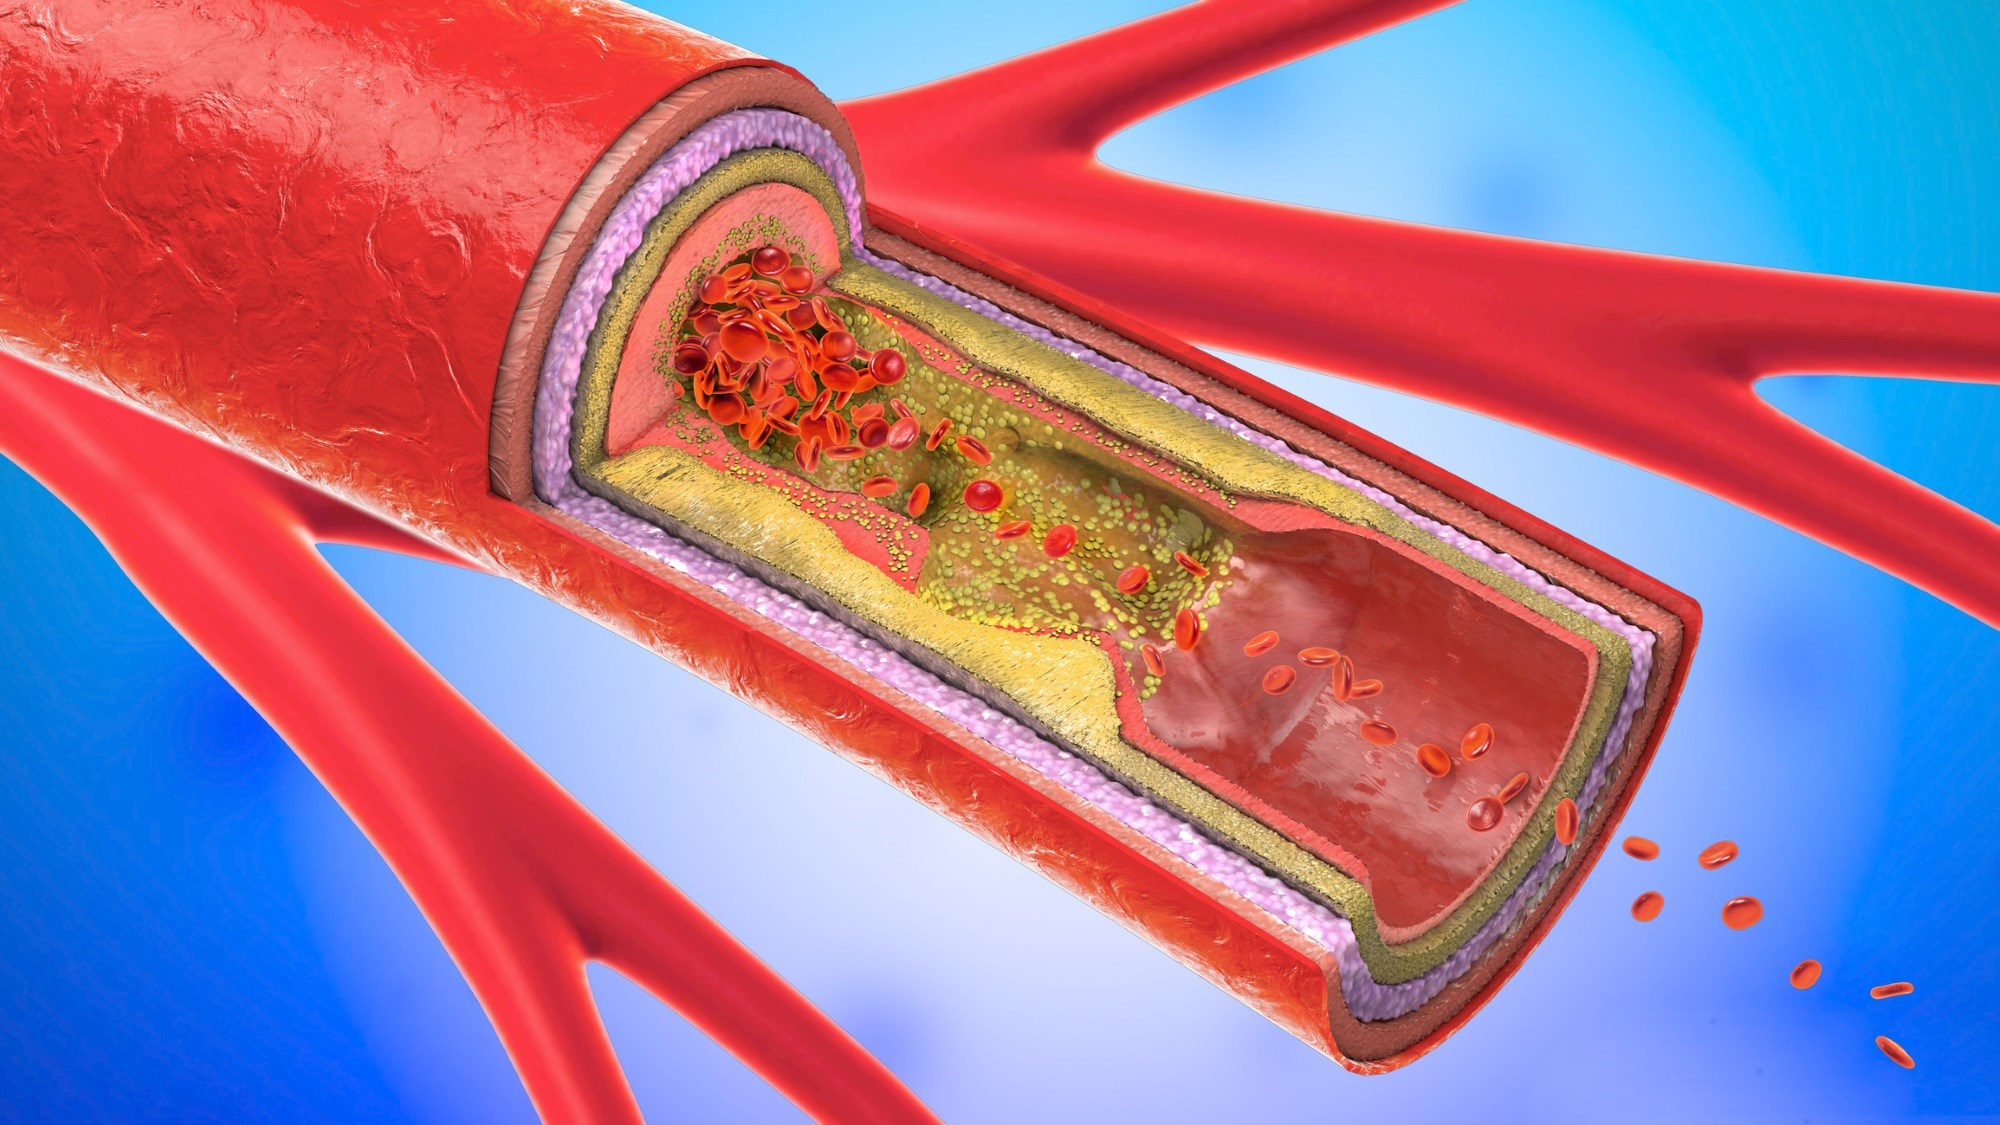 Short-Duration Type 2 Diabetes Associated With Adverse Vascular Effects